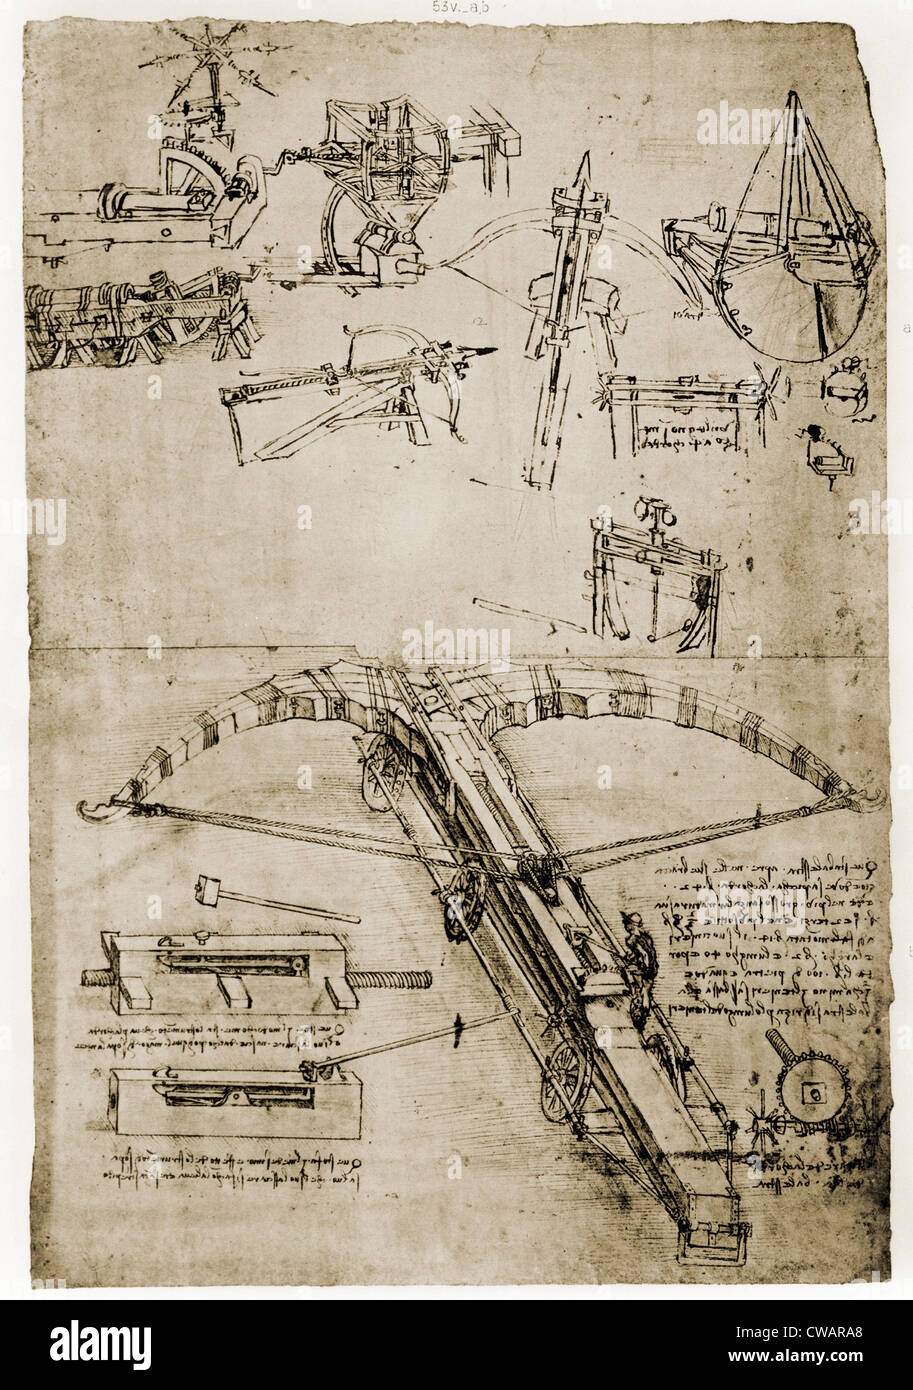 Page from the notebooks of Leonardo da Vinci (1452-1519) showing giant  crossbow. Ca. 1500.